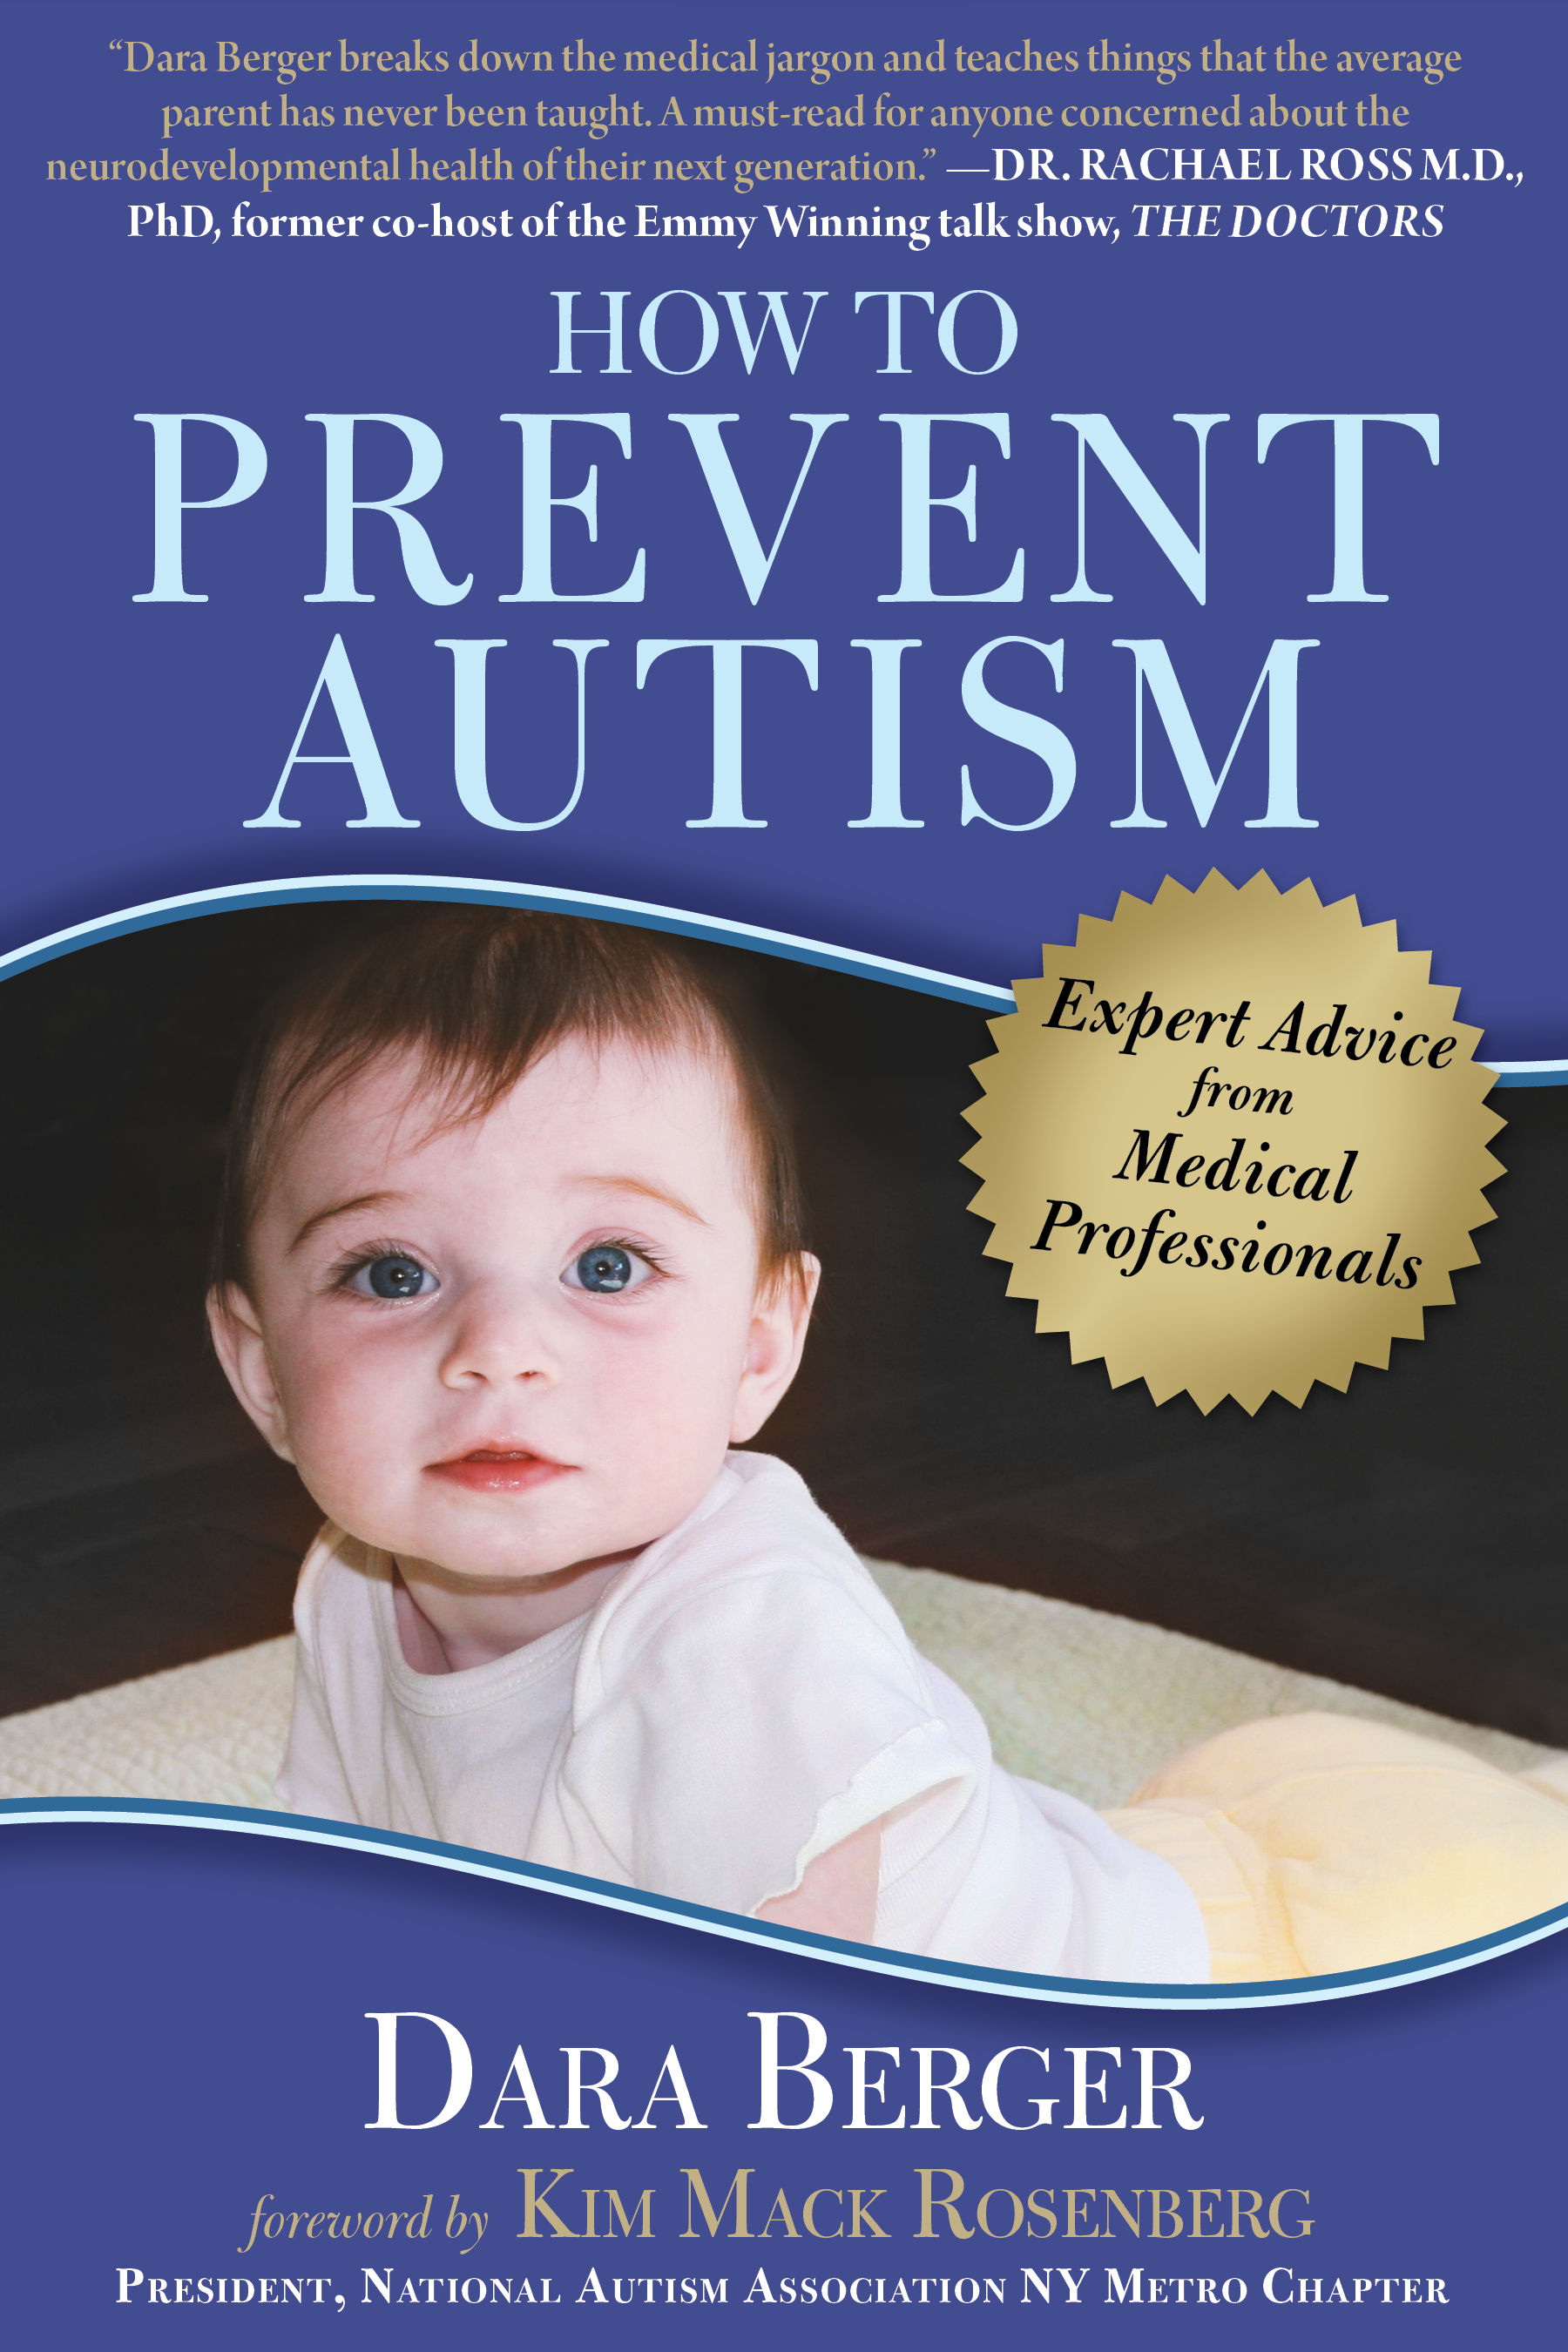 Special Events with Dara Berger author of How to Prevent Autism